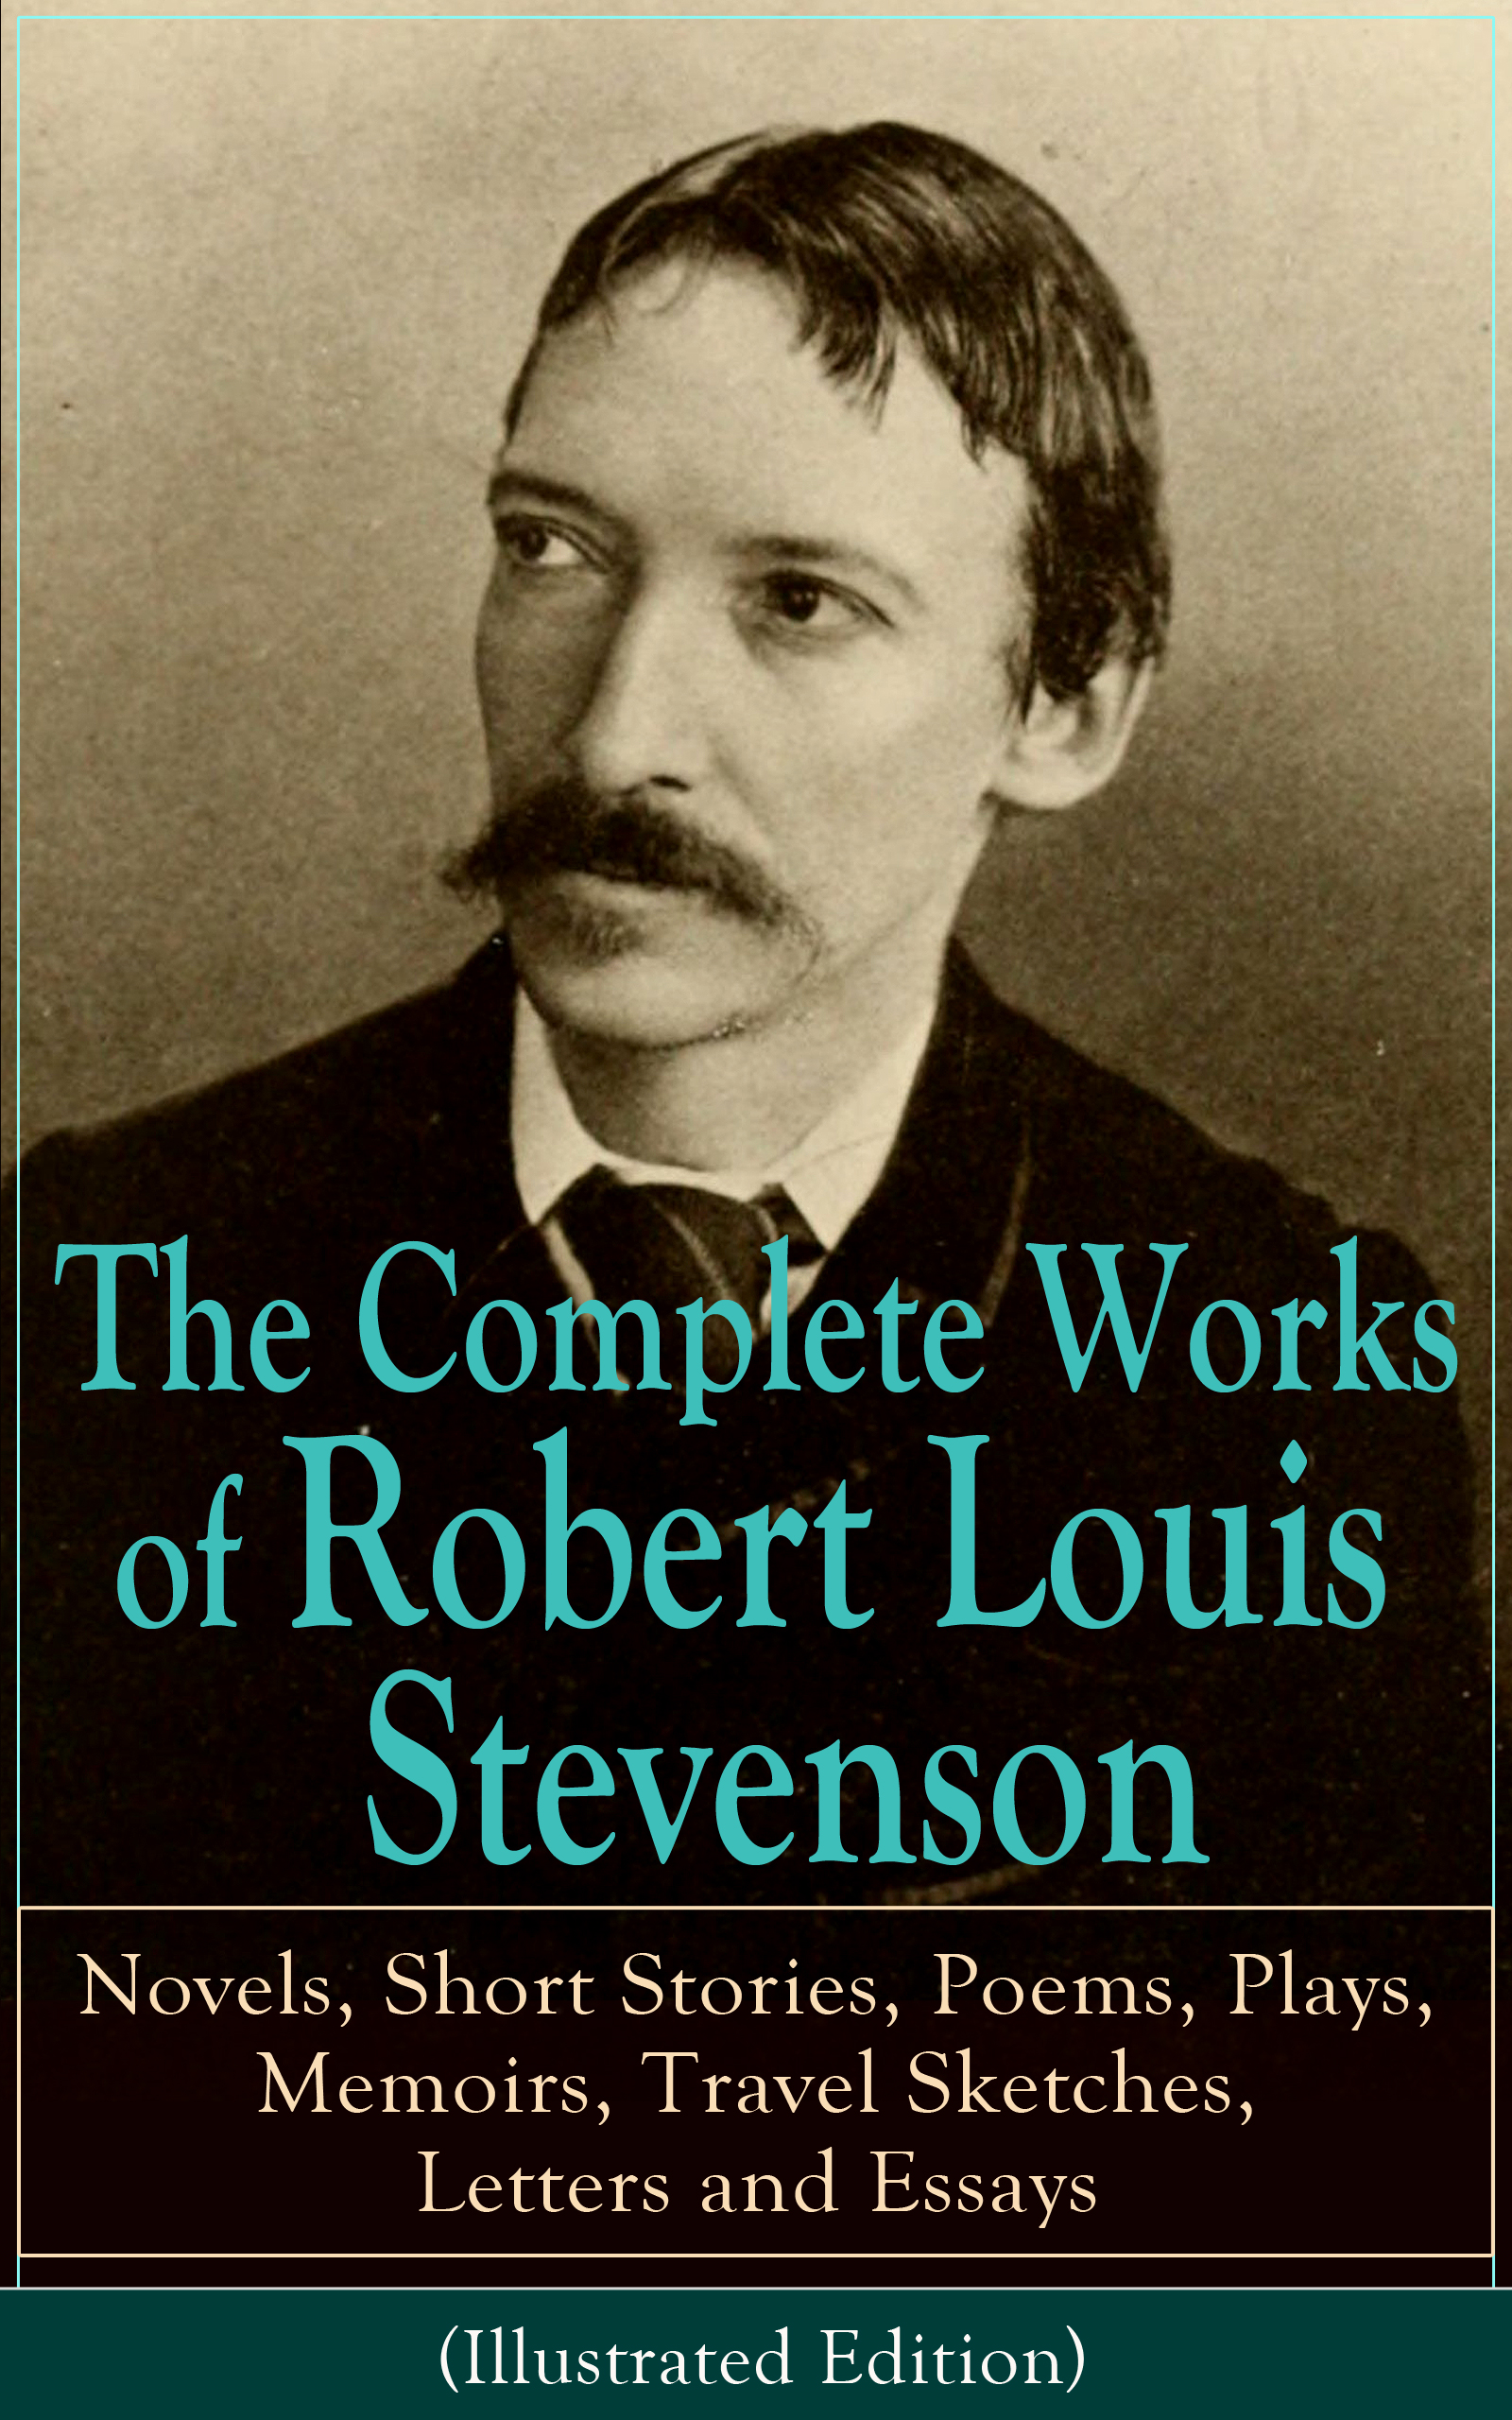 Robert Louis Stevenson The Complete Works of Robert Louis Stevenson: Novels, Short Stories, Poems, Plays, Memoirs, Travel Sketches, Letters and Essays (Illustrated Edition) stevenson robert louis an inland voyage and travels with a donkey